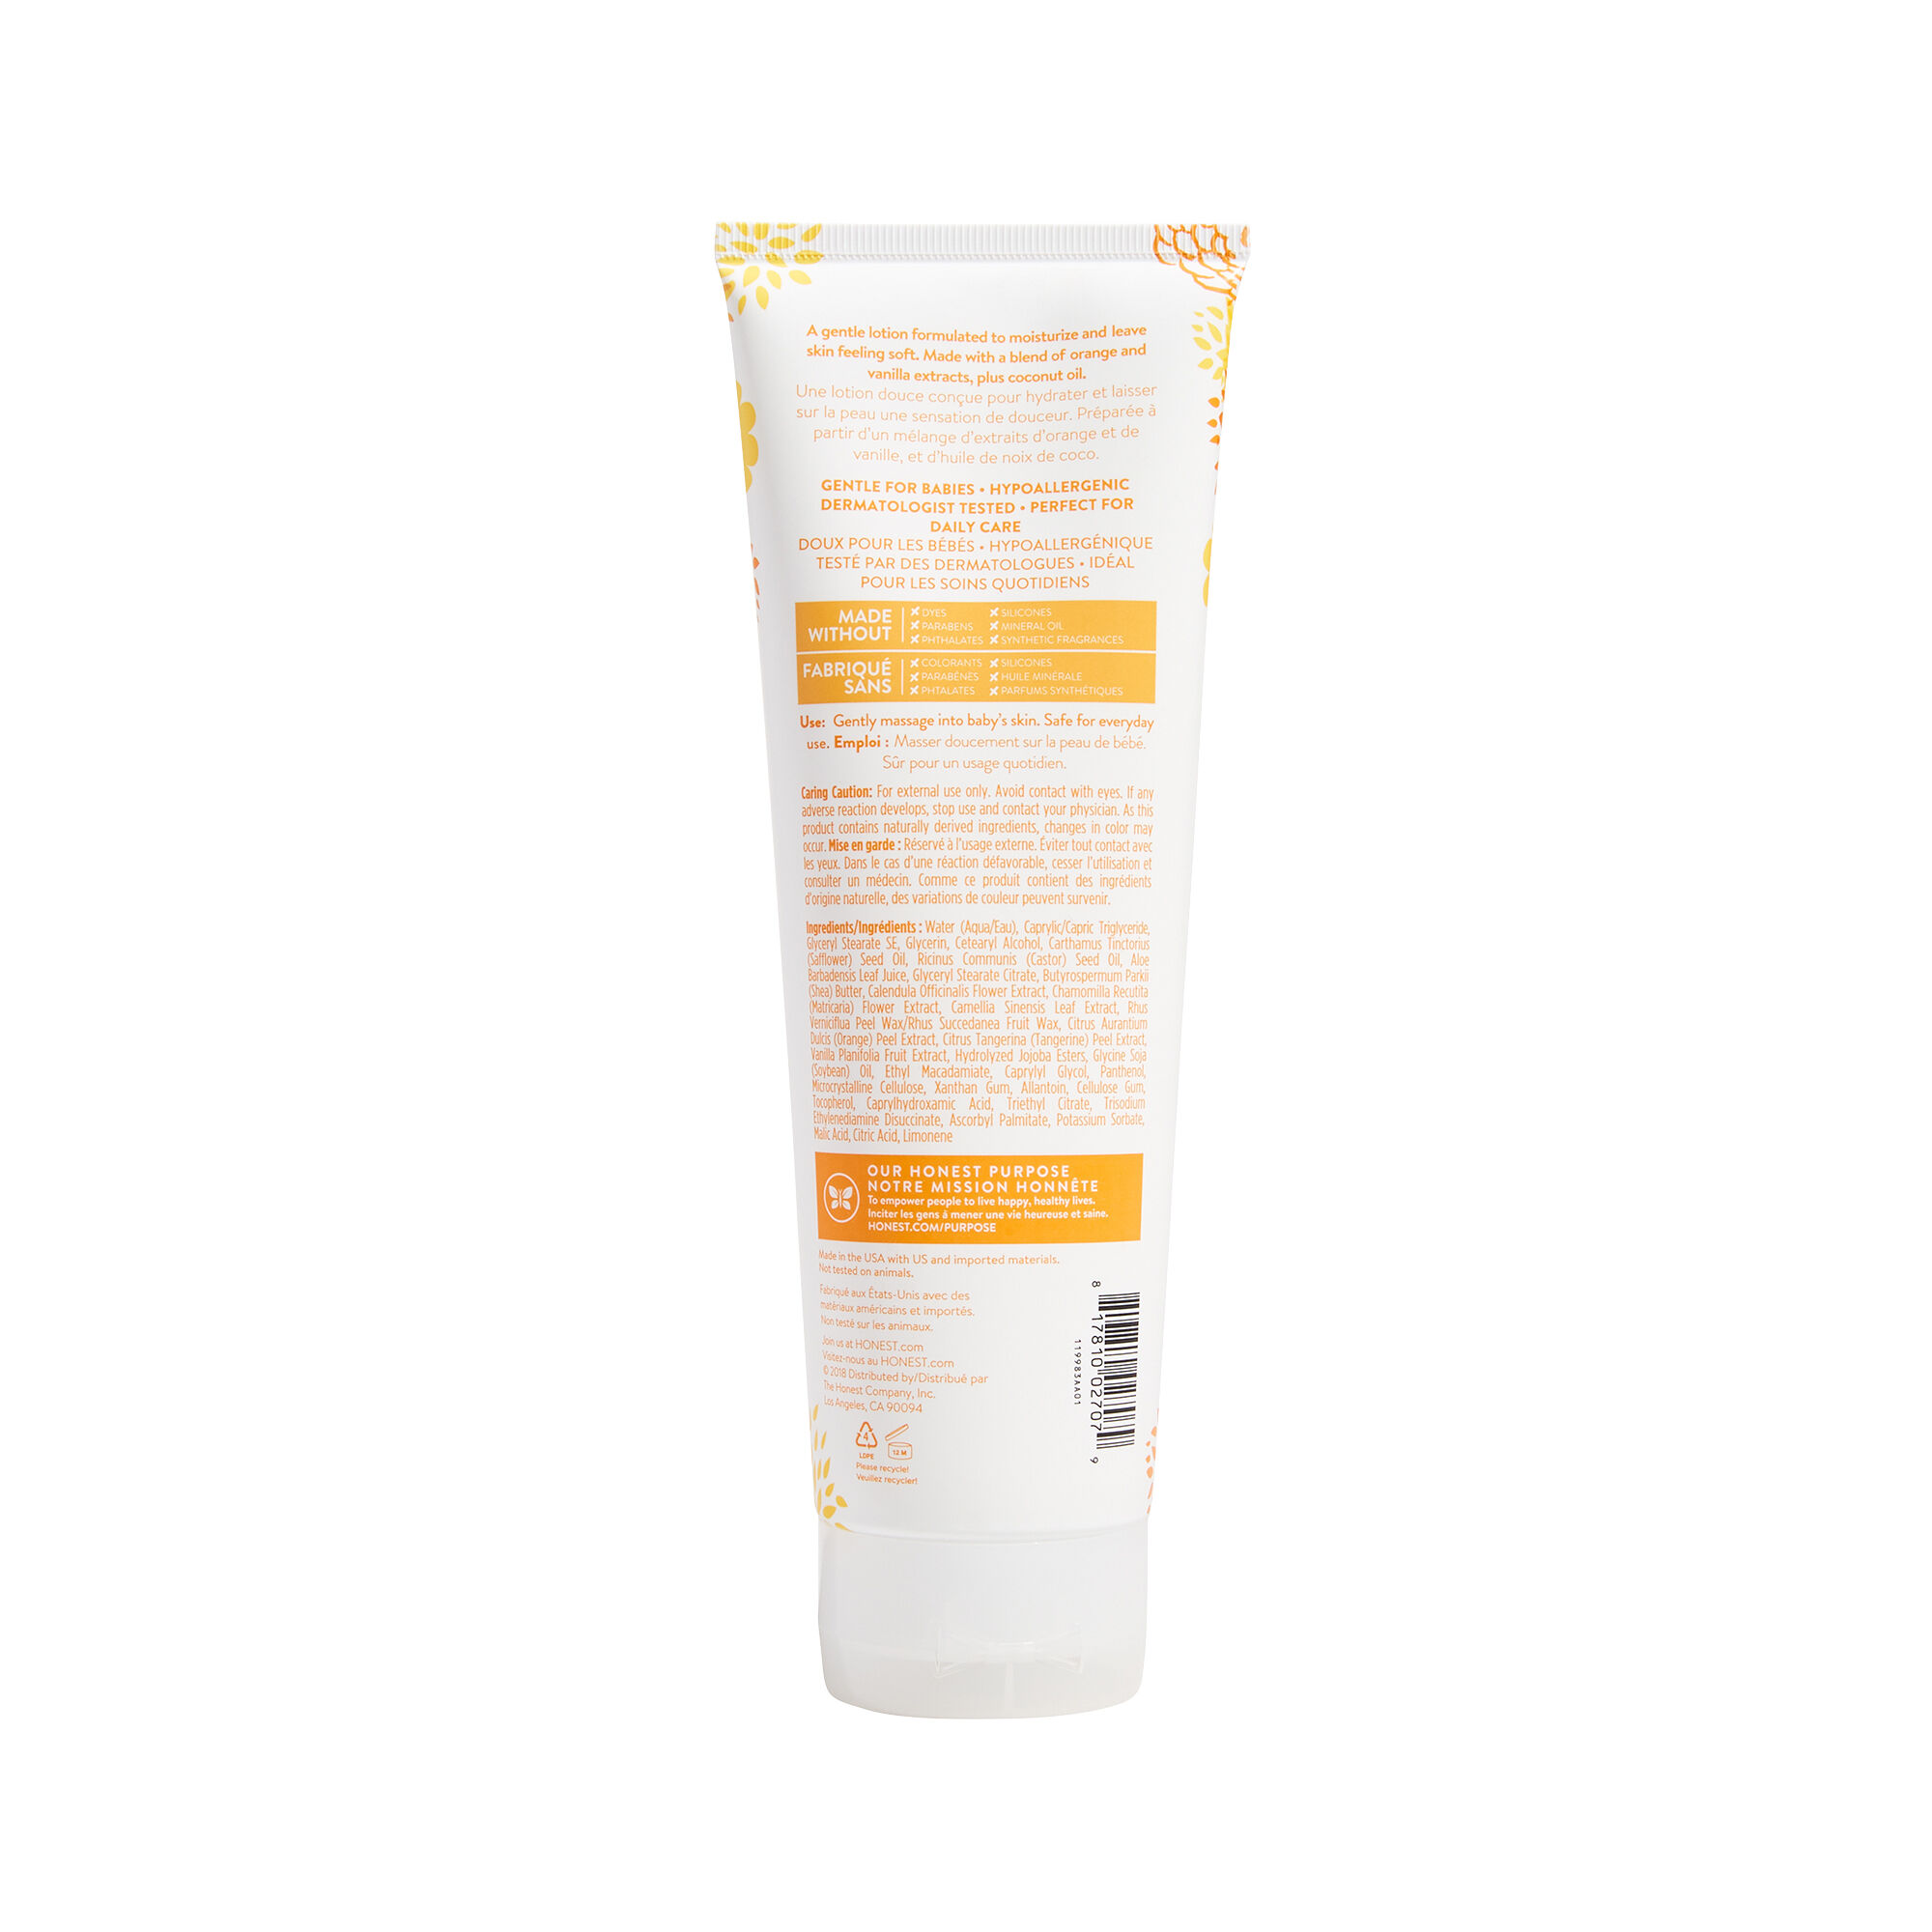 Face + Body Lotion - Everyday Gentle